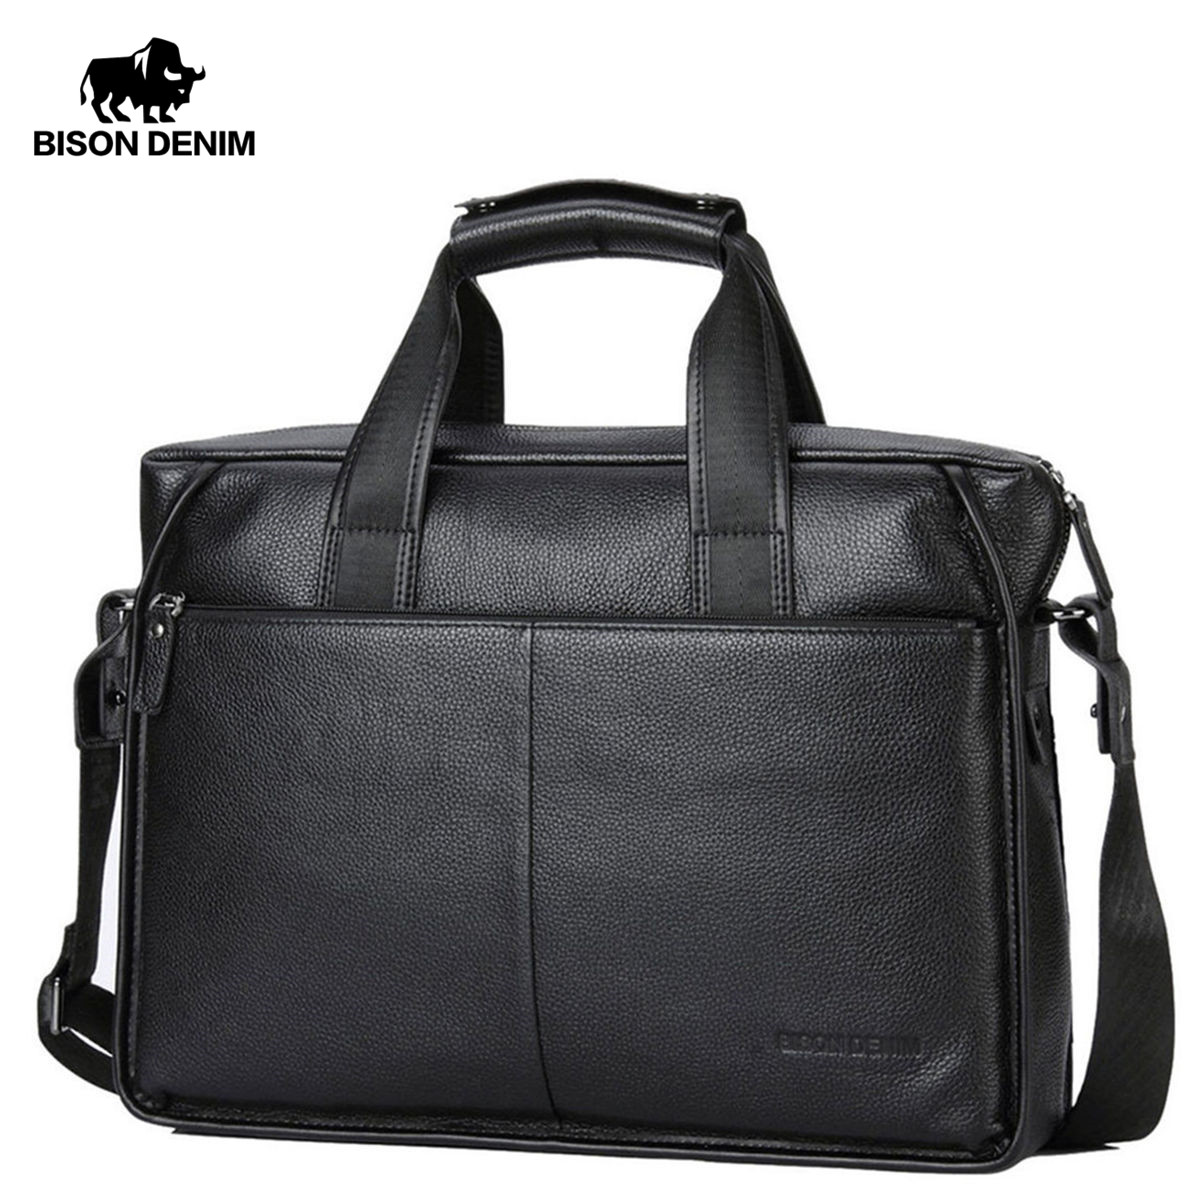 BISON DENIM Genuine Leather Guarantee Briefcase Men Bag 14 inch Laptop Soft Cowhide Messenger Bag Handbag